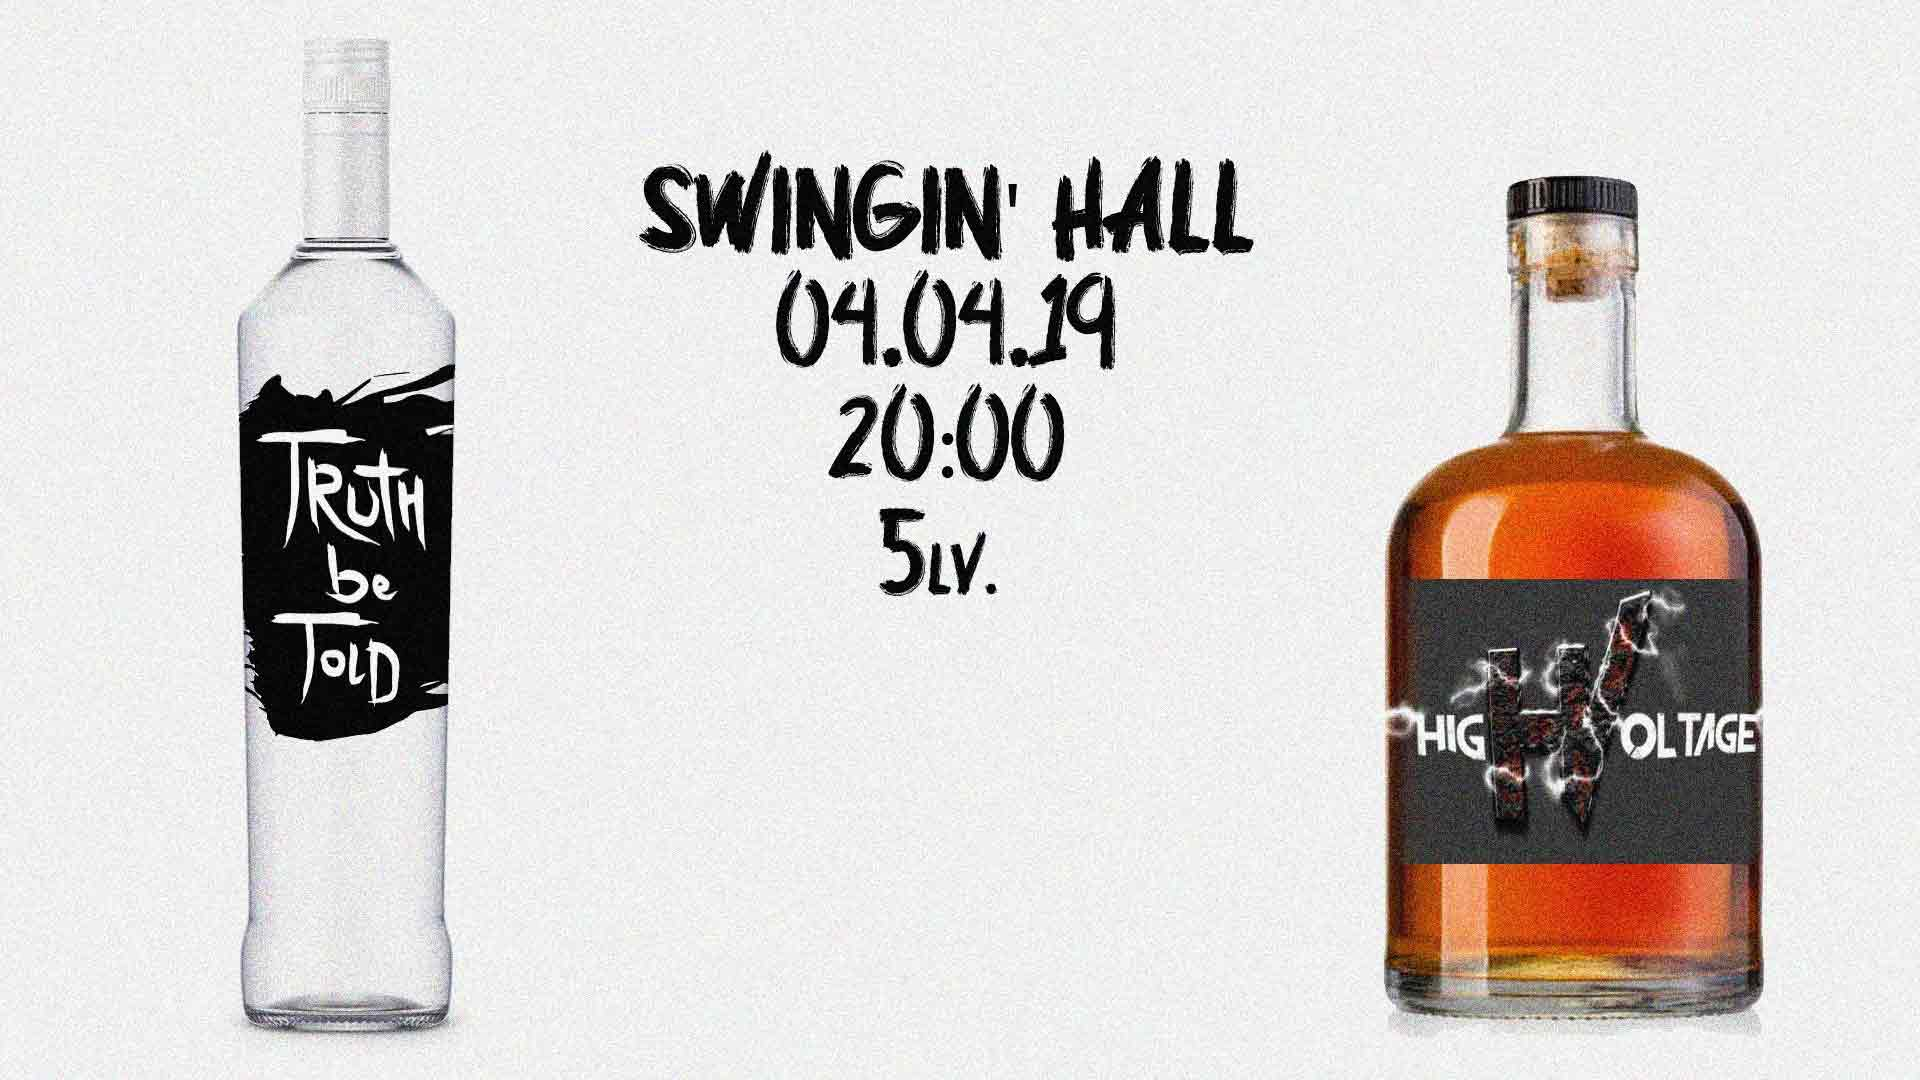 04 април 2019 г. 20:00 ч. Swingin' Hall | Truth be Told & High Voltage